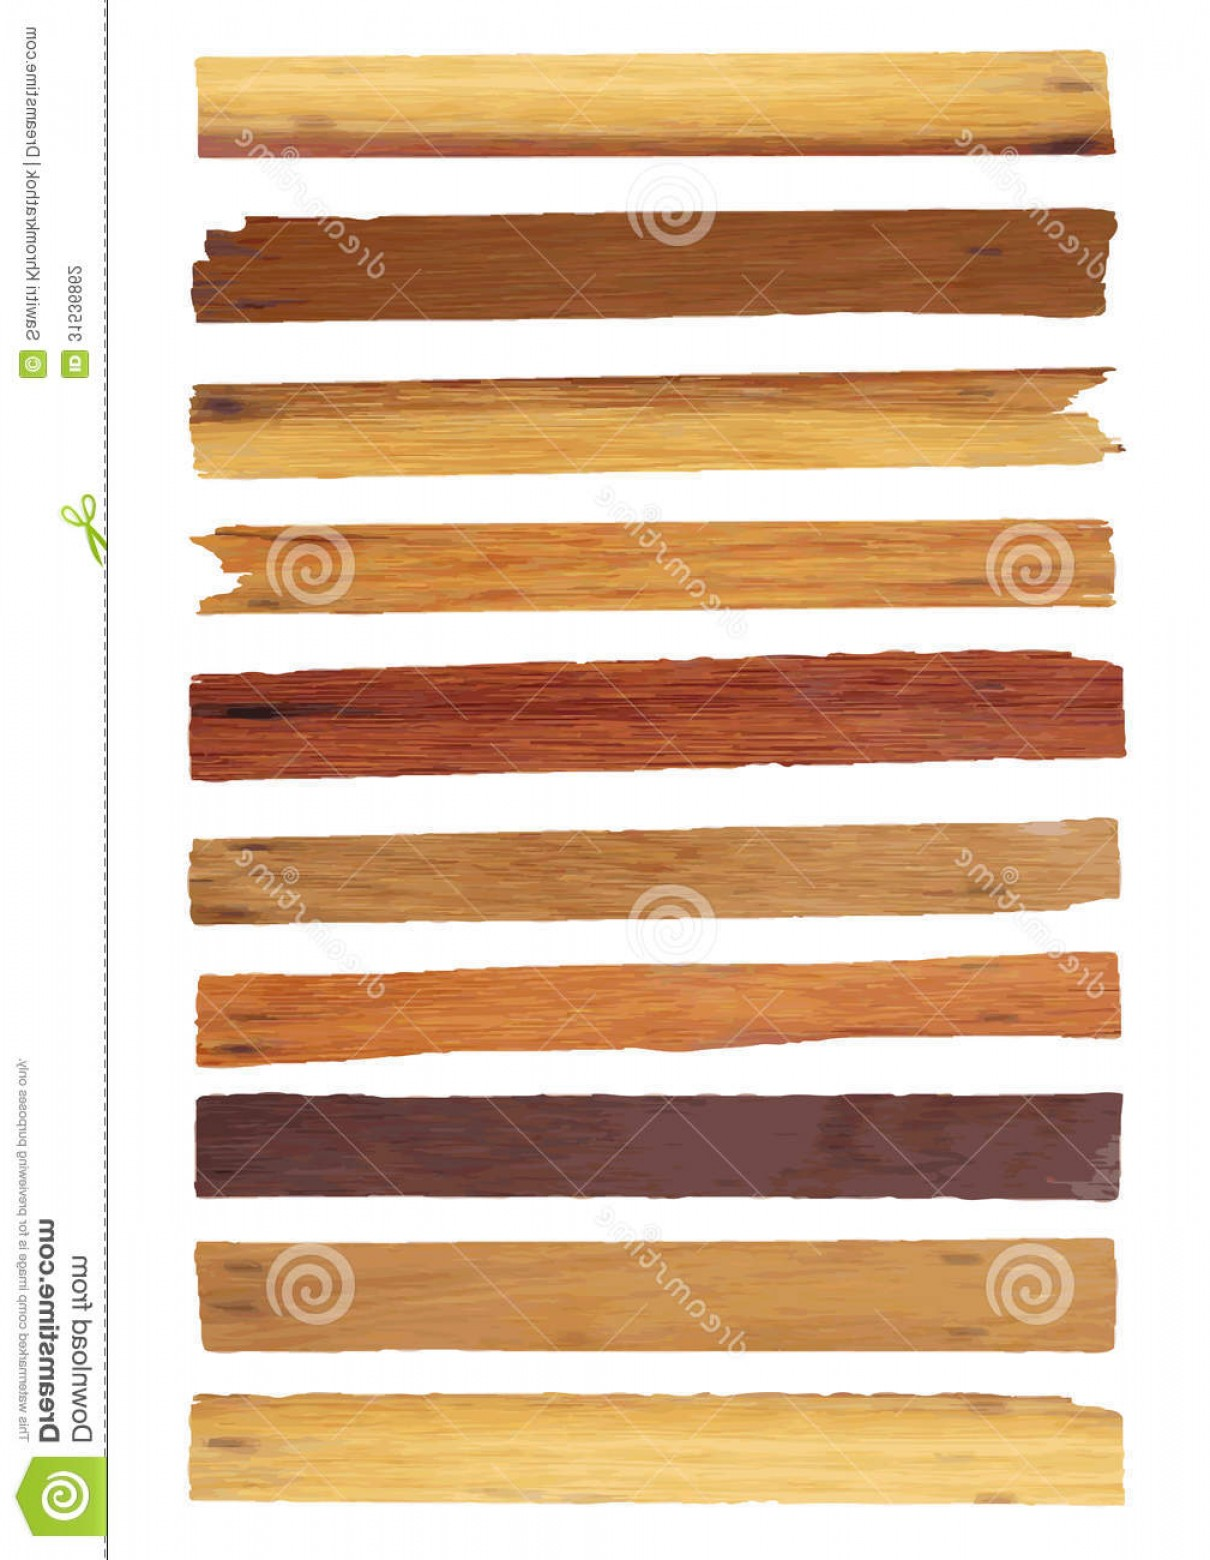 Wood Plank Vector Art: Stock Photography Vector Wood Plank Isolated White Old Background Illustration Image